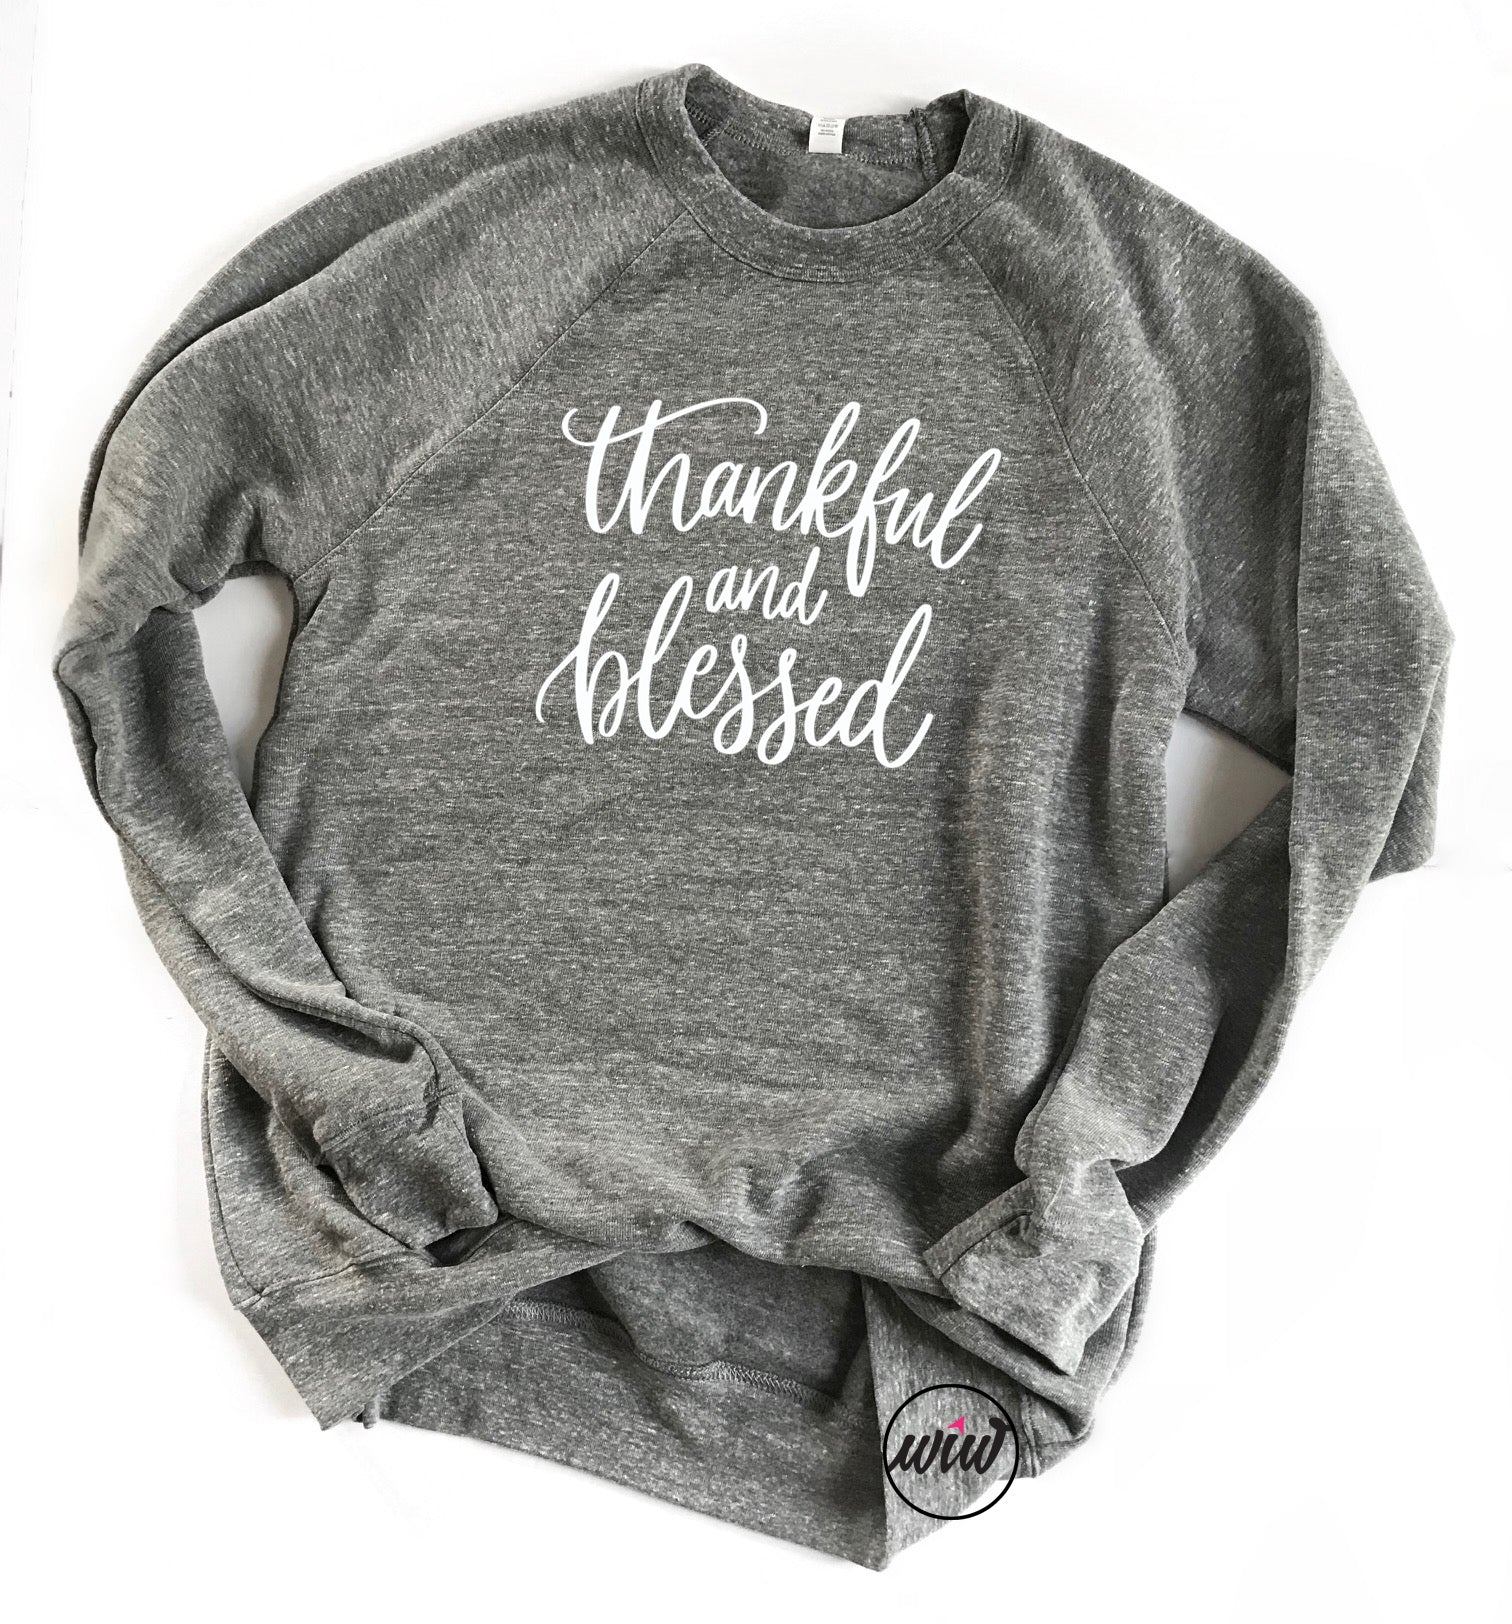 Thankful Blessed Unisex Sweatshirt. Fall Sweater. Cozy AF. Lounge Wear. Winter Shirt. Fall Shirt Thanksgiving Shirt. Christian Faith